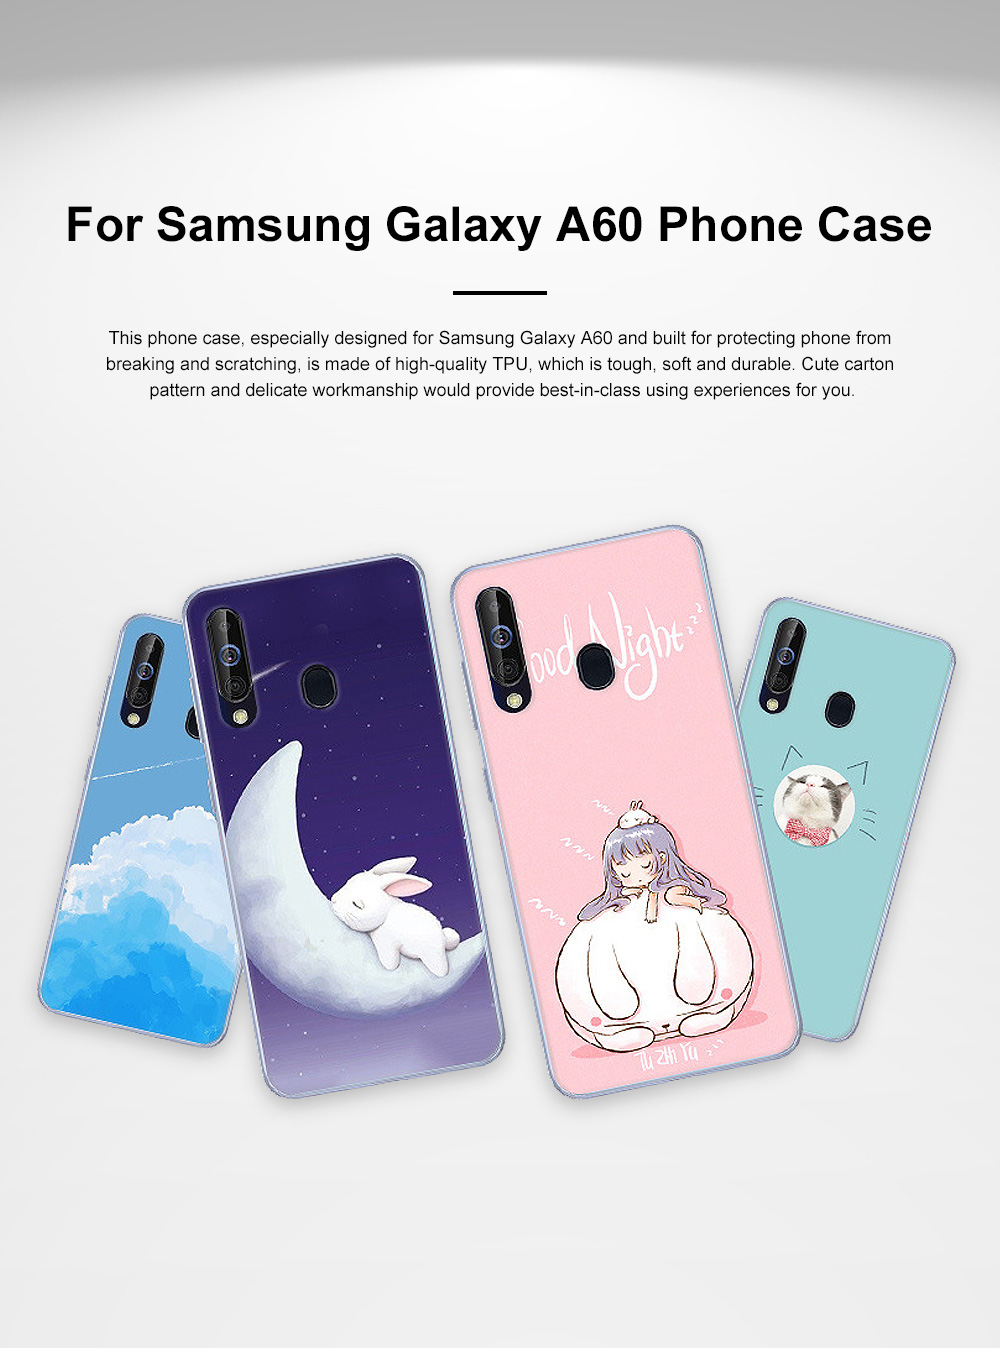 Cute Stylish Cartoon Painting Samsung Galaxy A60 Phone Case, Soft Flexible Breaking-proof TPU Samsung Phone Protective Cover 0